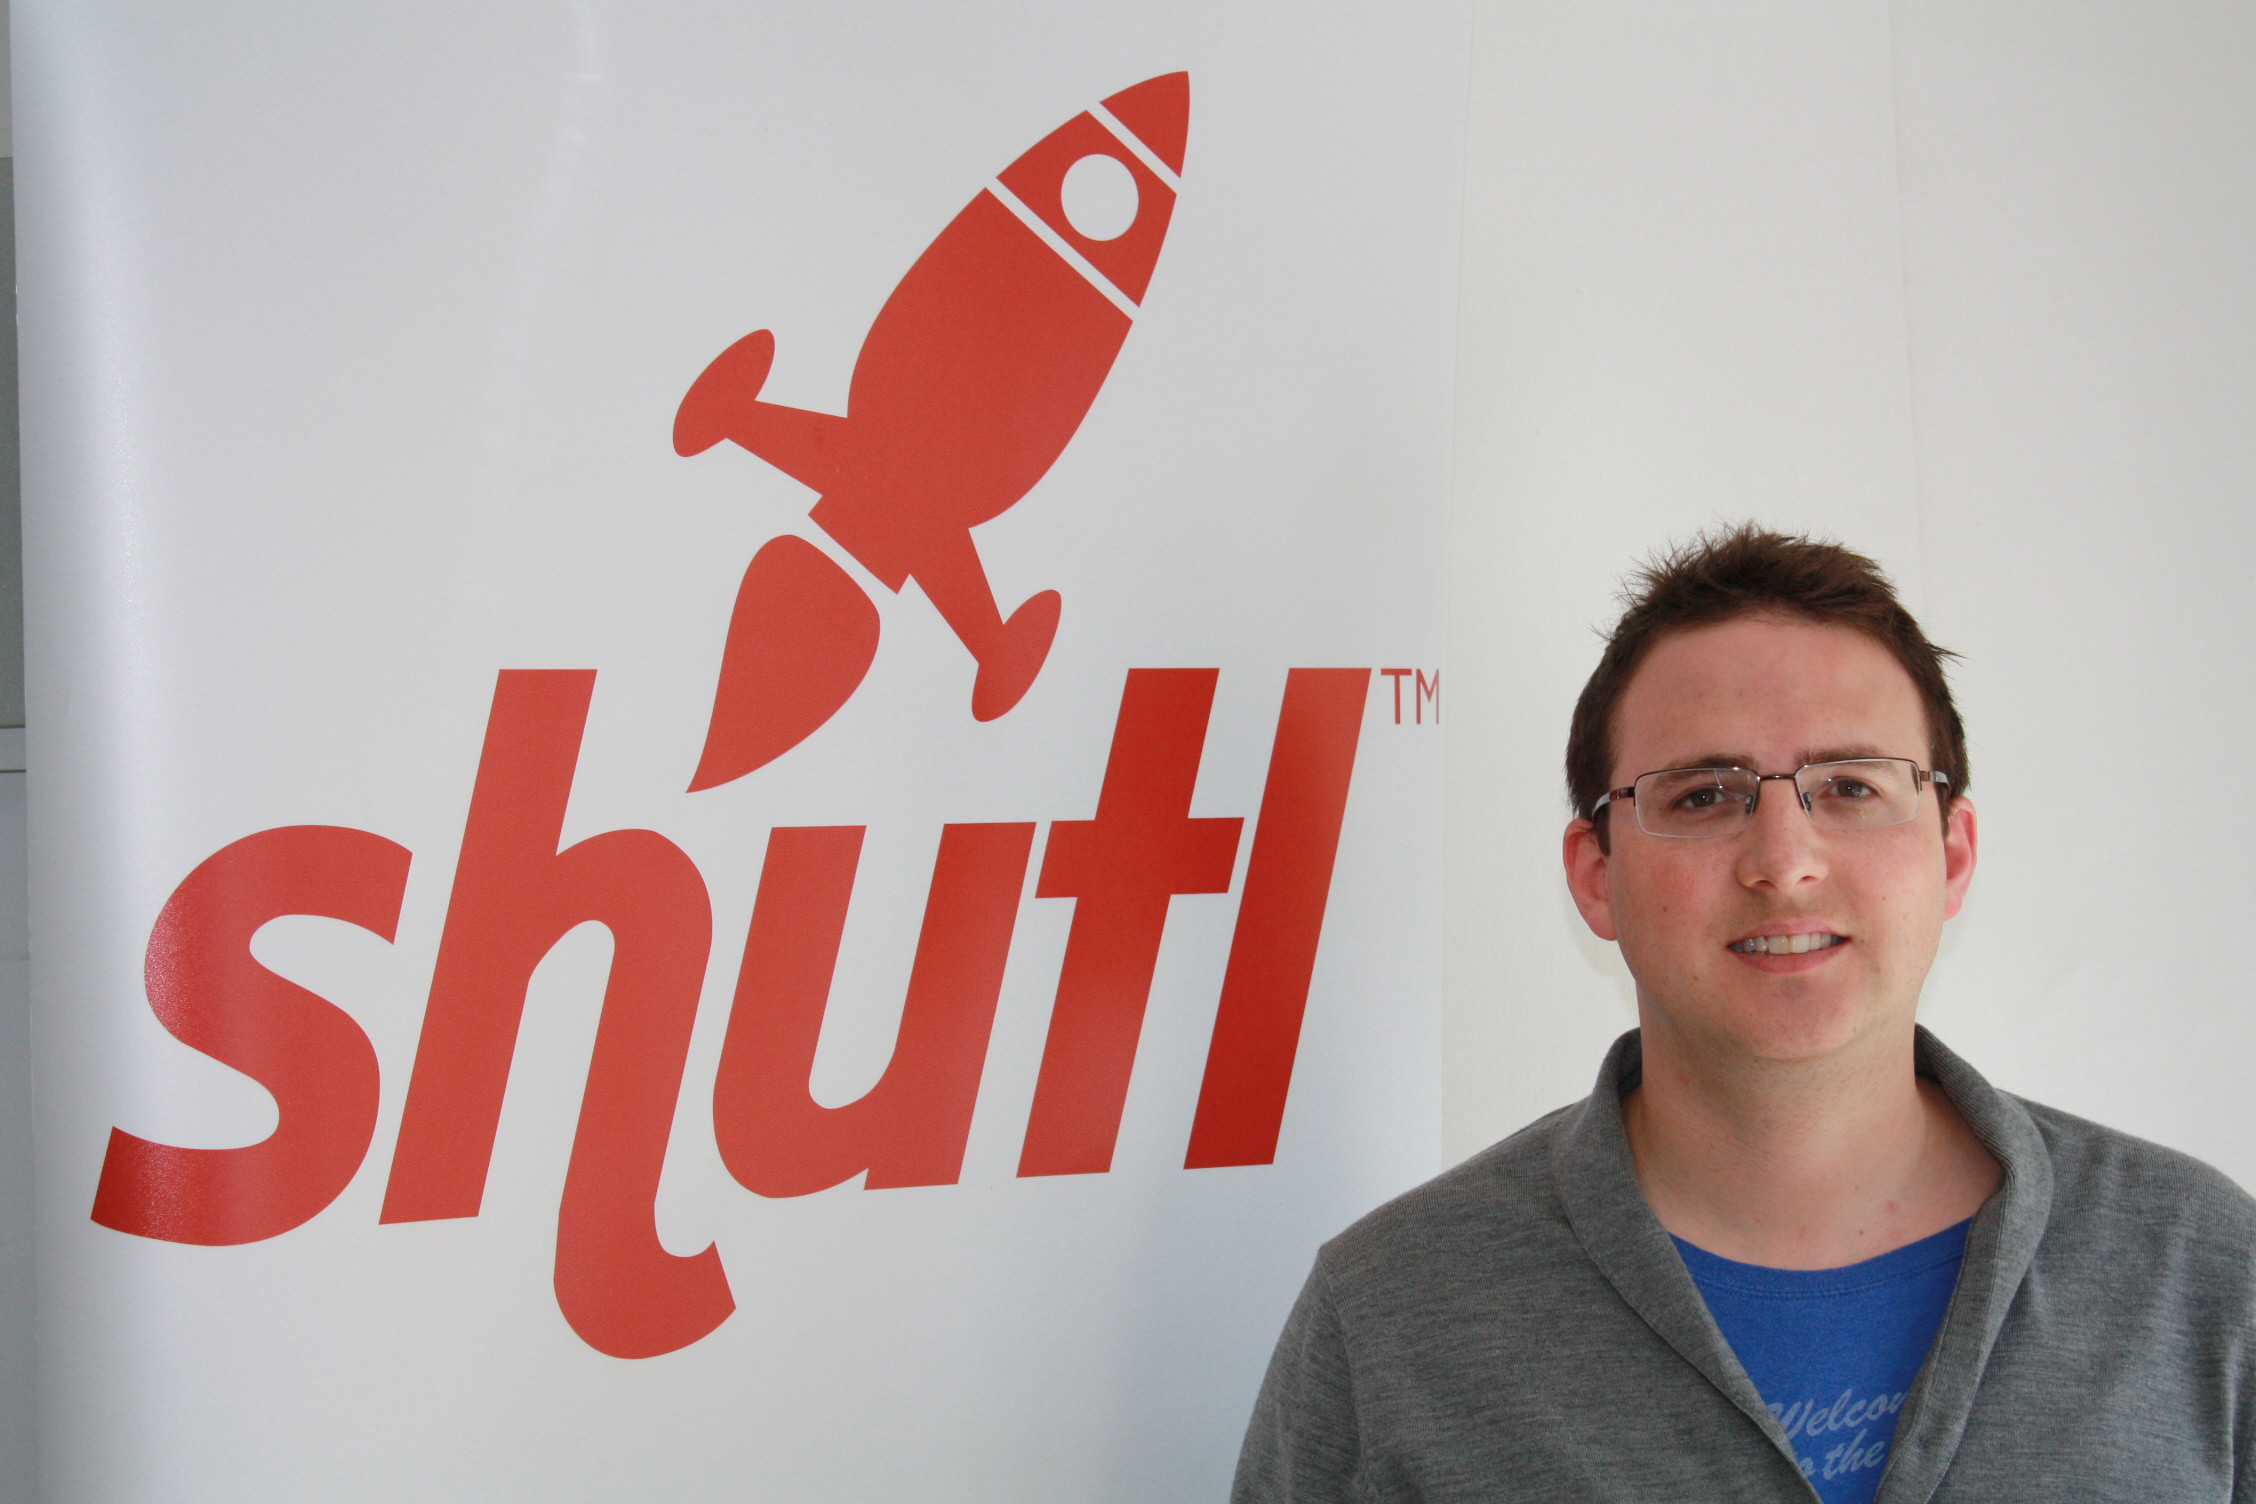 Shutl branches out across UK